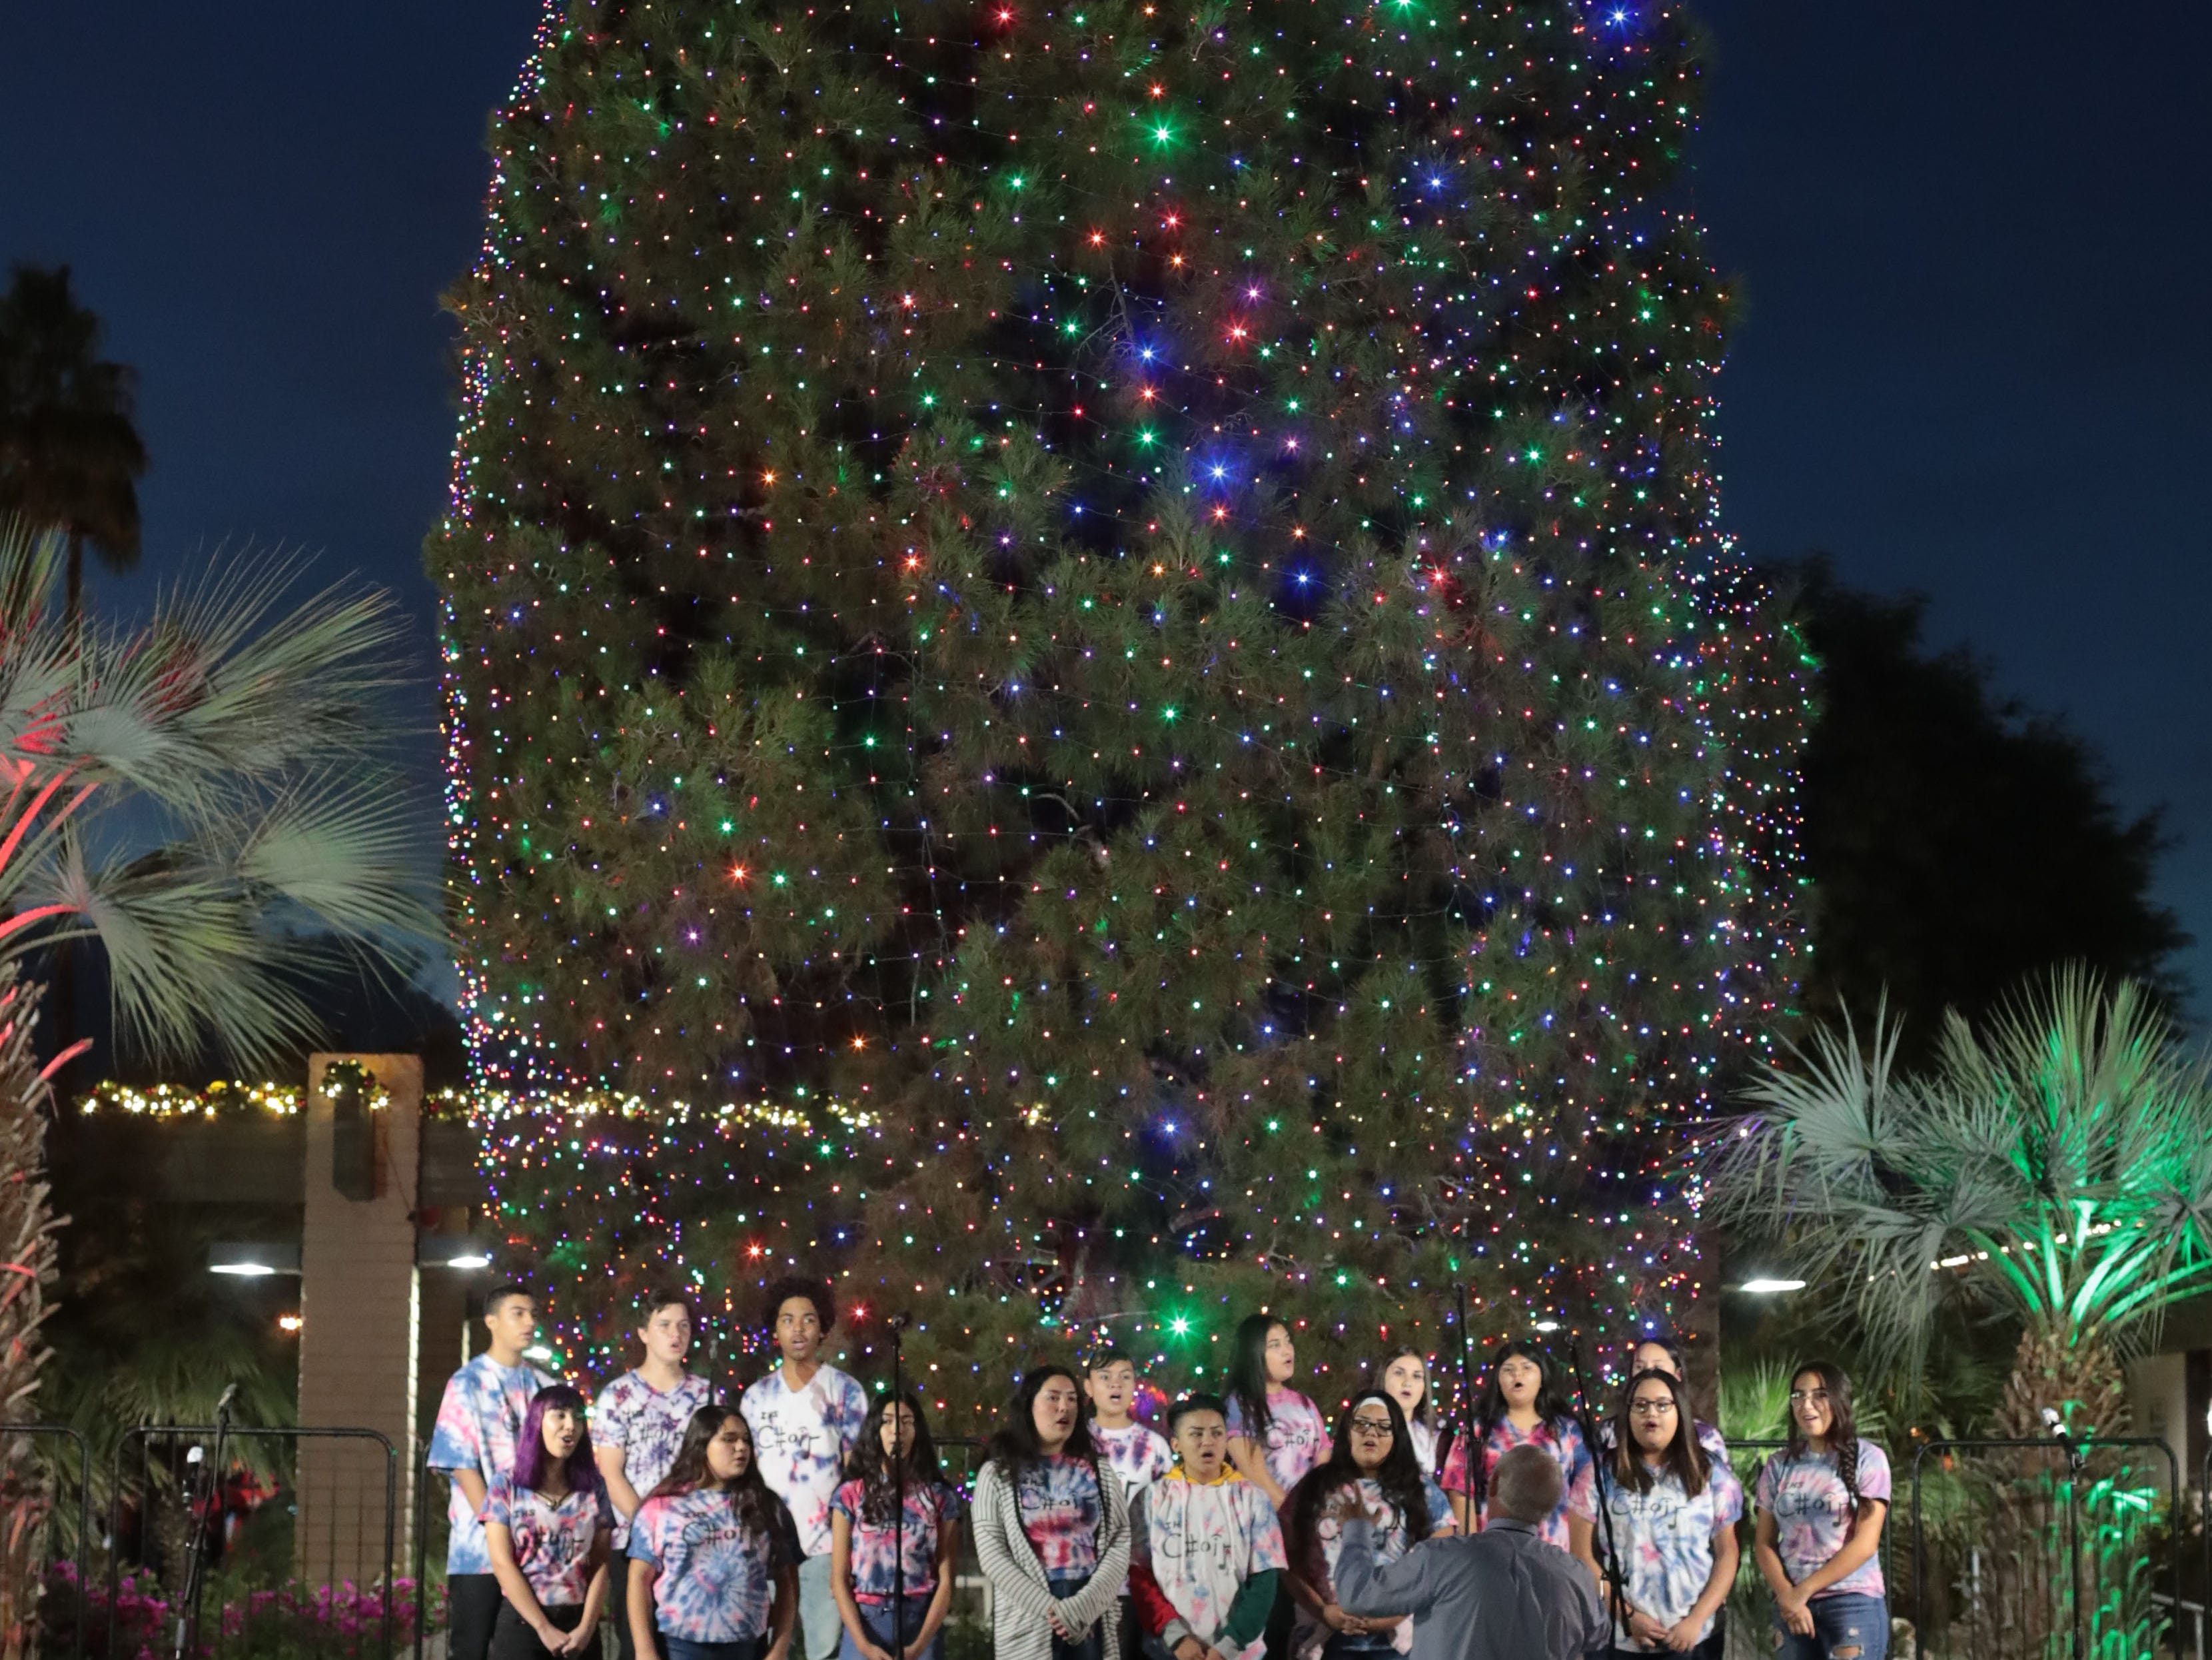 The Indio High School Mixed Chorus sing at the City of Indio's Christmas tree lighting on Saturday, December 1, 2018 in Indio.